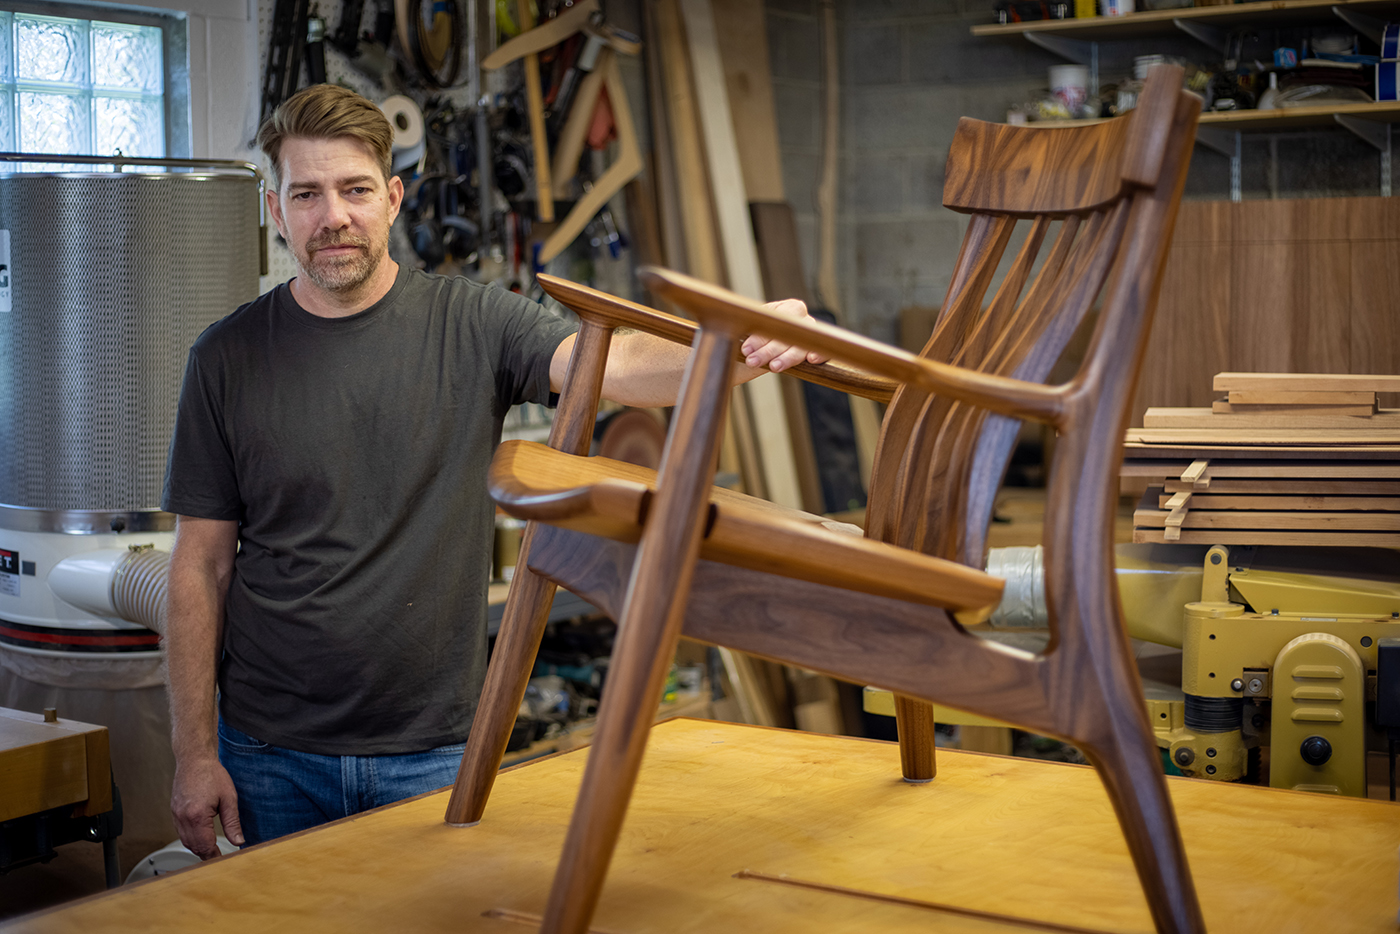 Through pieces such as his award-winning lounge chair, Justin Brown creates eye-catching furniture with an emphasis on lasting value and comfort.